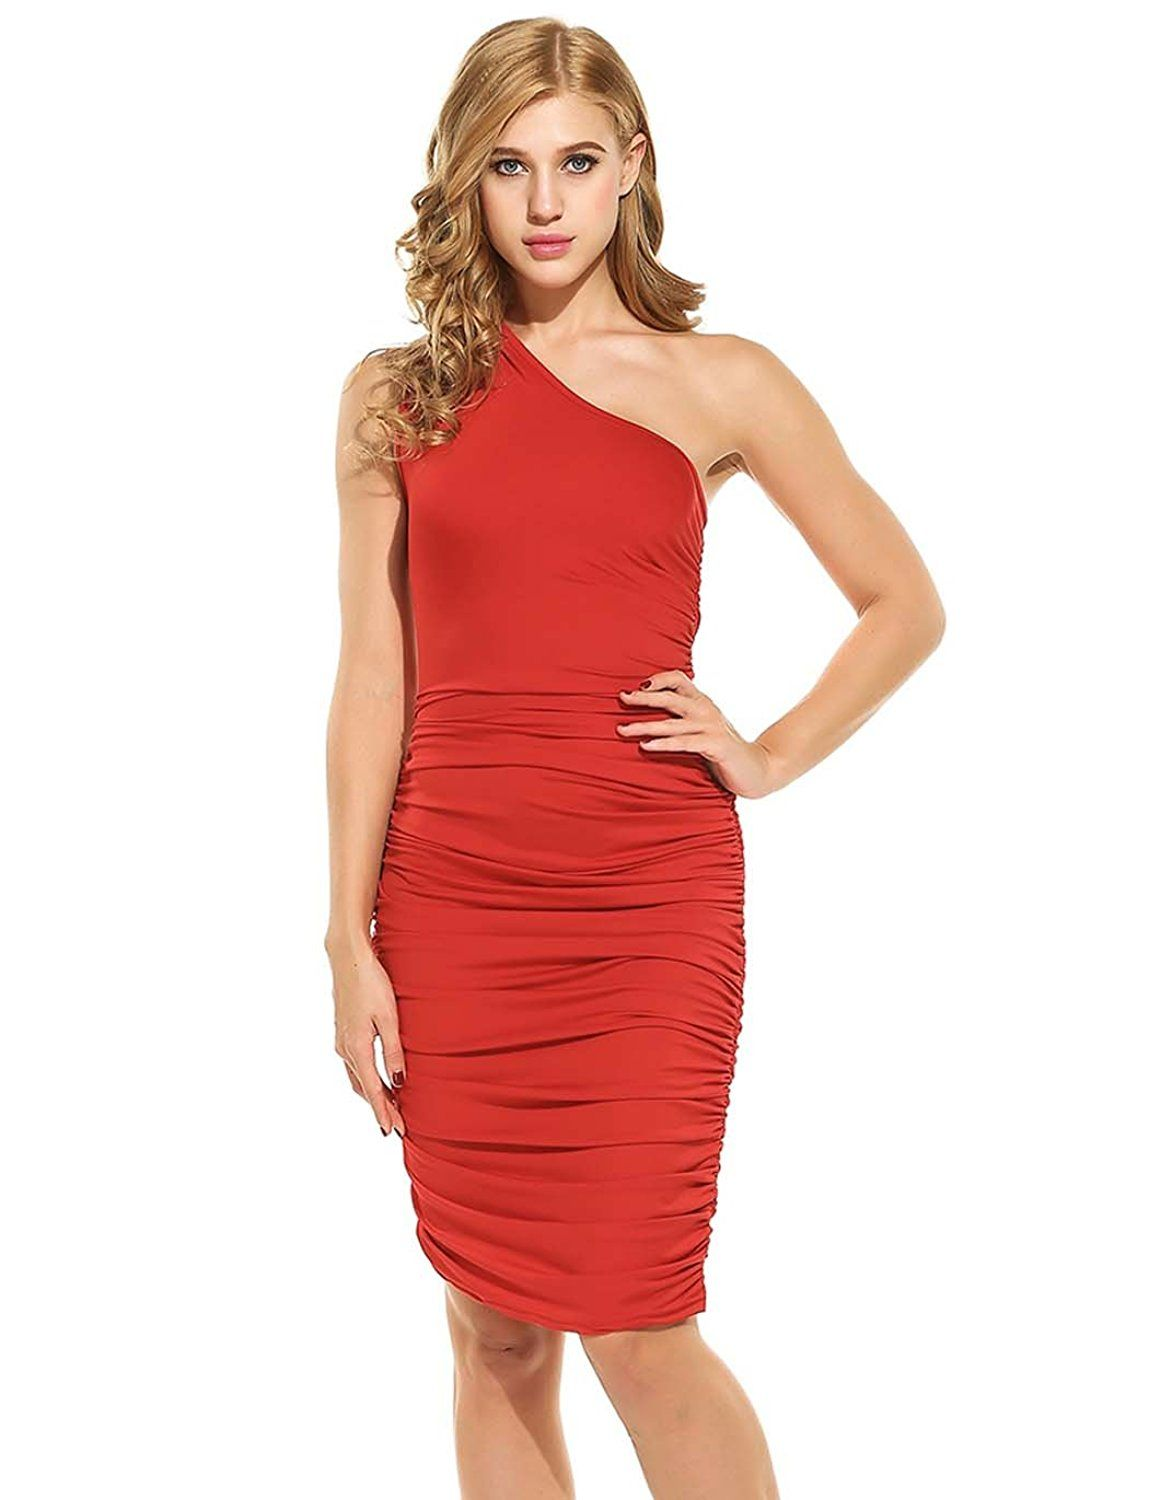 a5160d00bff Amazon.com: Women Casual One Shoulder Stretch Ruched Bodycon Cocktail Party  Club Midi Dress: Clothing